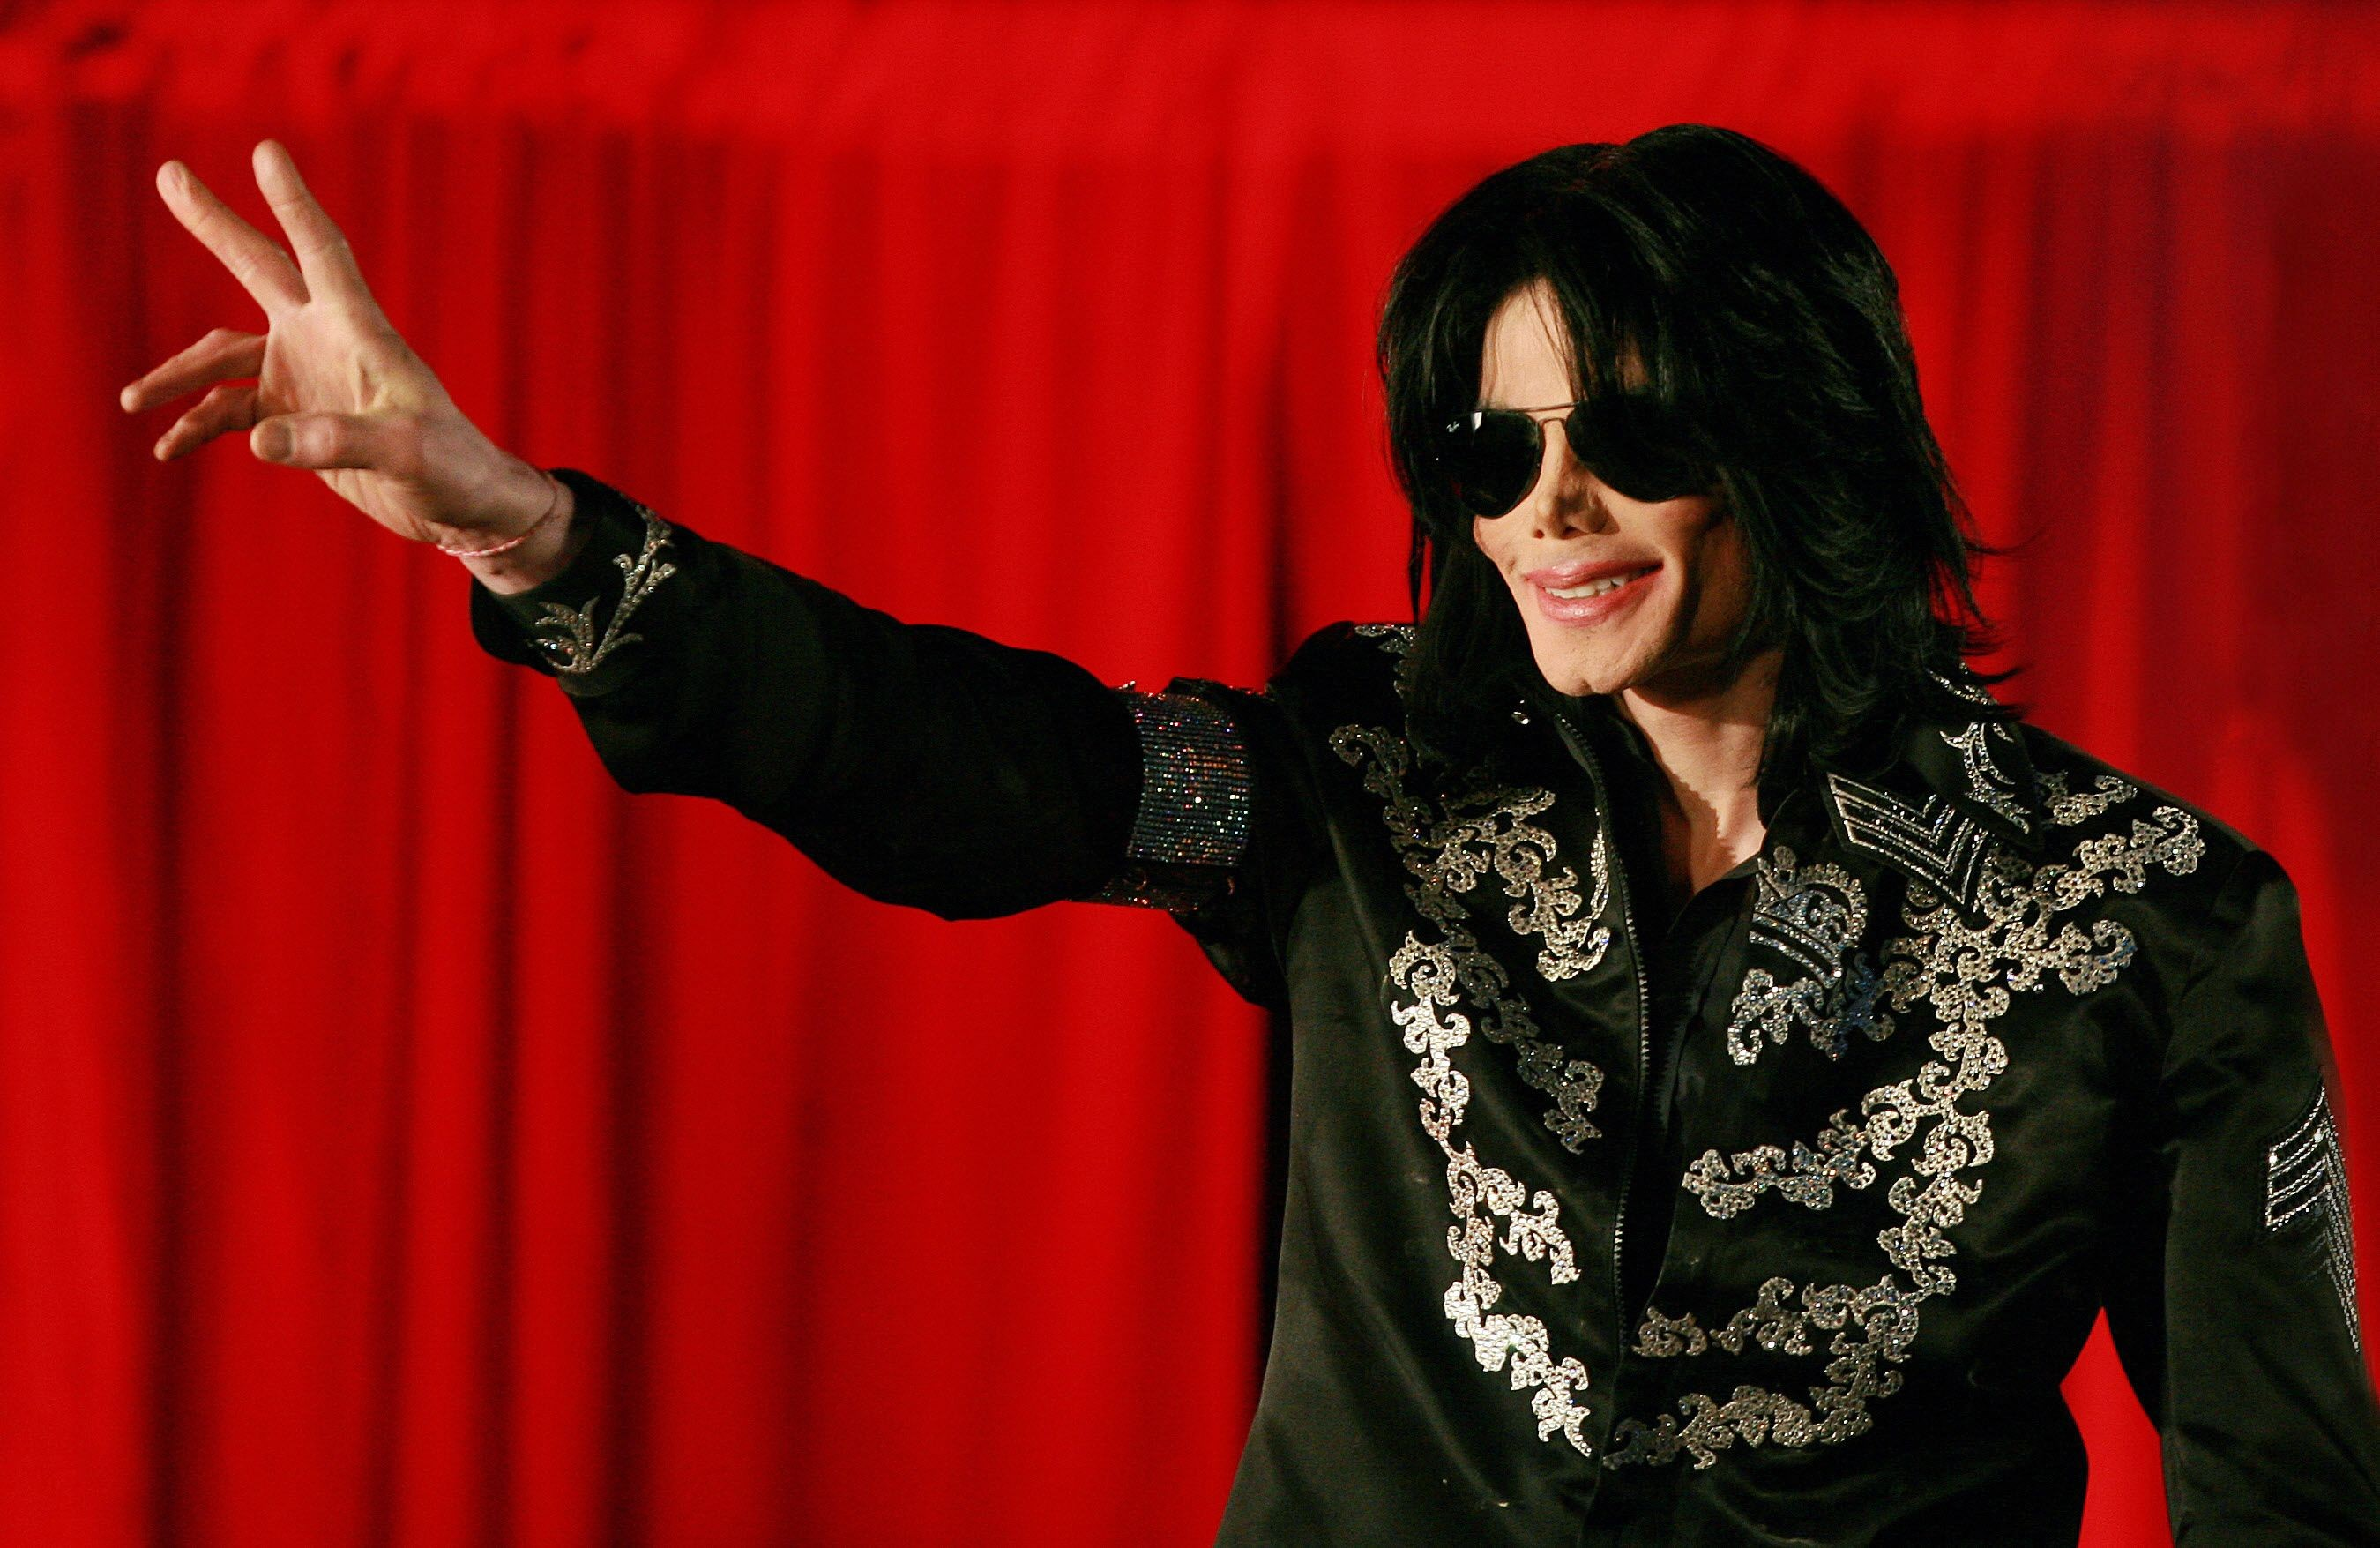 Michael Jackson-themed clothing to be pulled from Louis